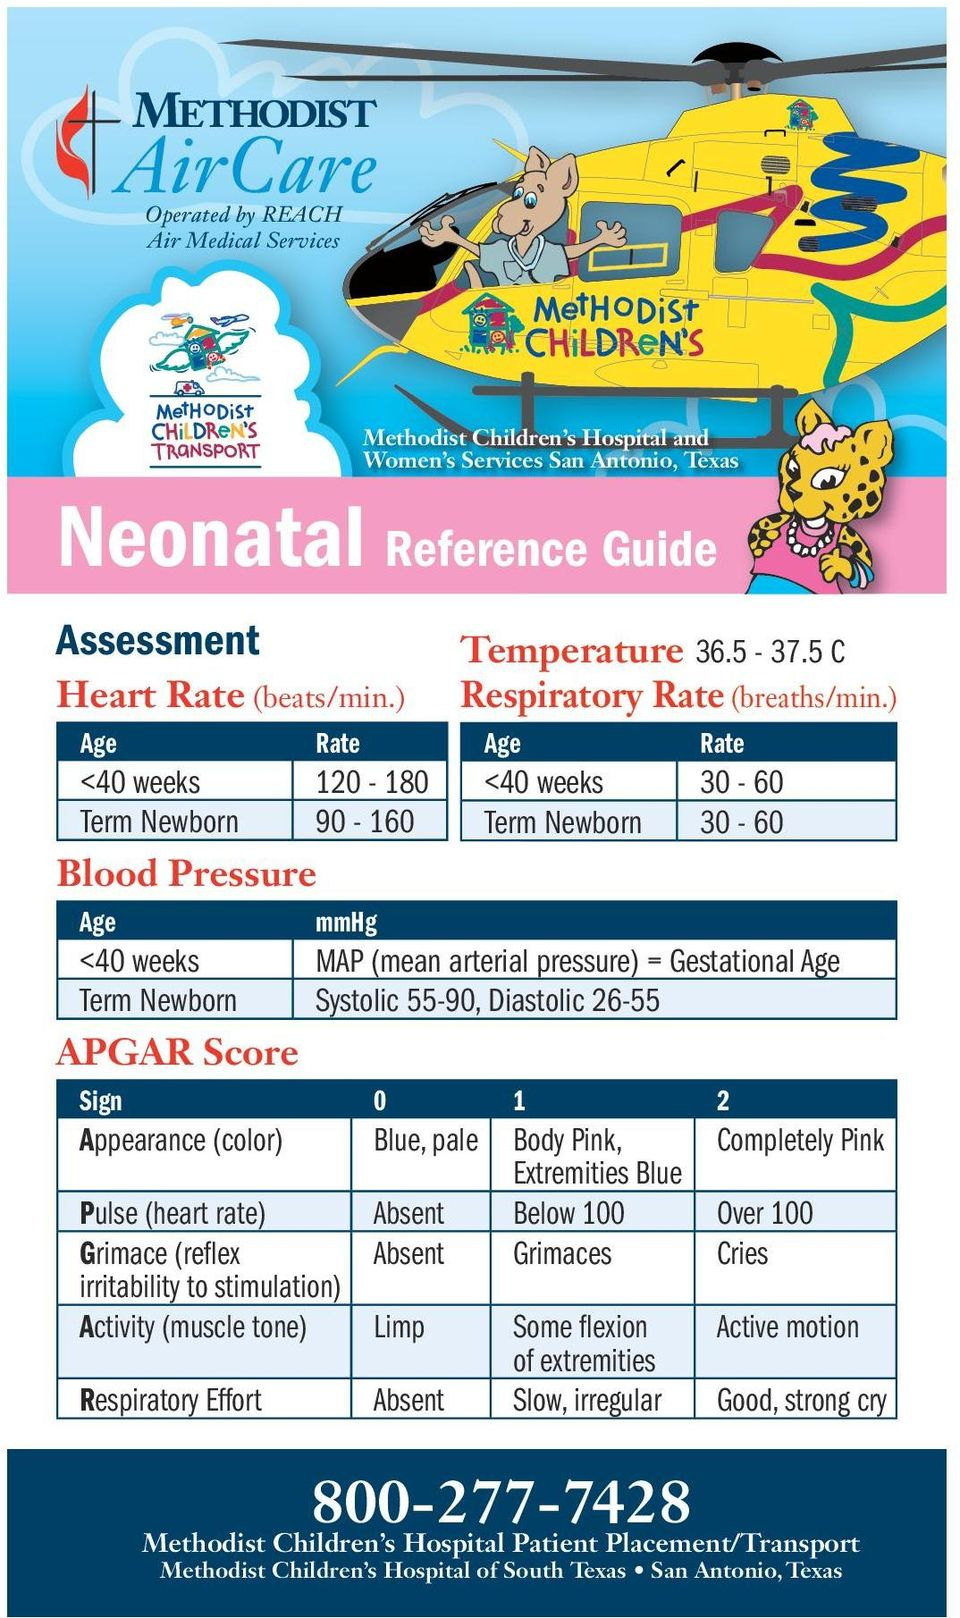 ) Age Rate <40 weeks 30-60 Term Newborn 30-60 Age mmhg <40 weeks MAP (mean arterial pressure) = Gestational Age Term Newborn Systolic 55-90, Diastolic 26-55 APGAR Score Sign 0 1 2